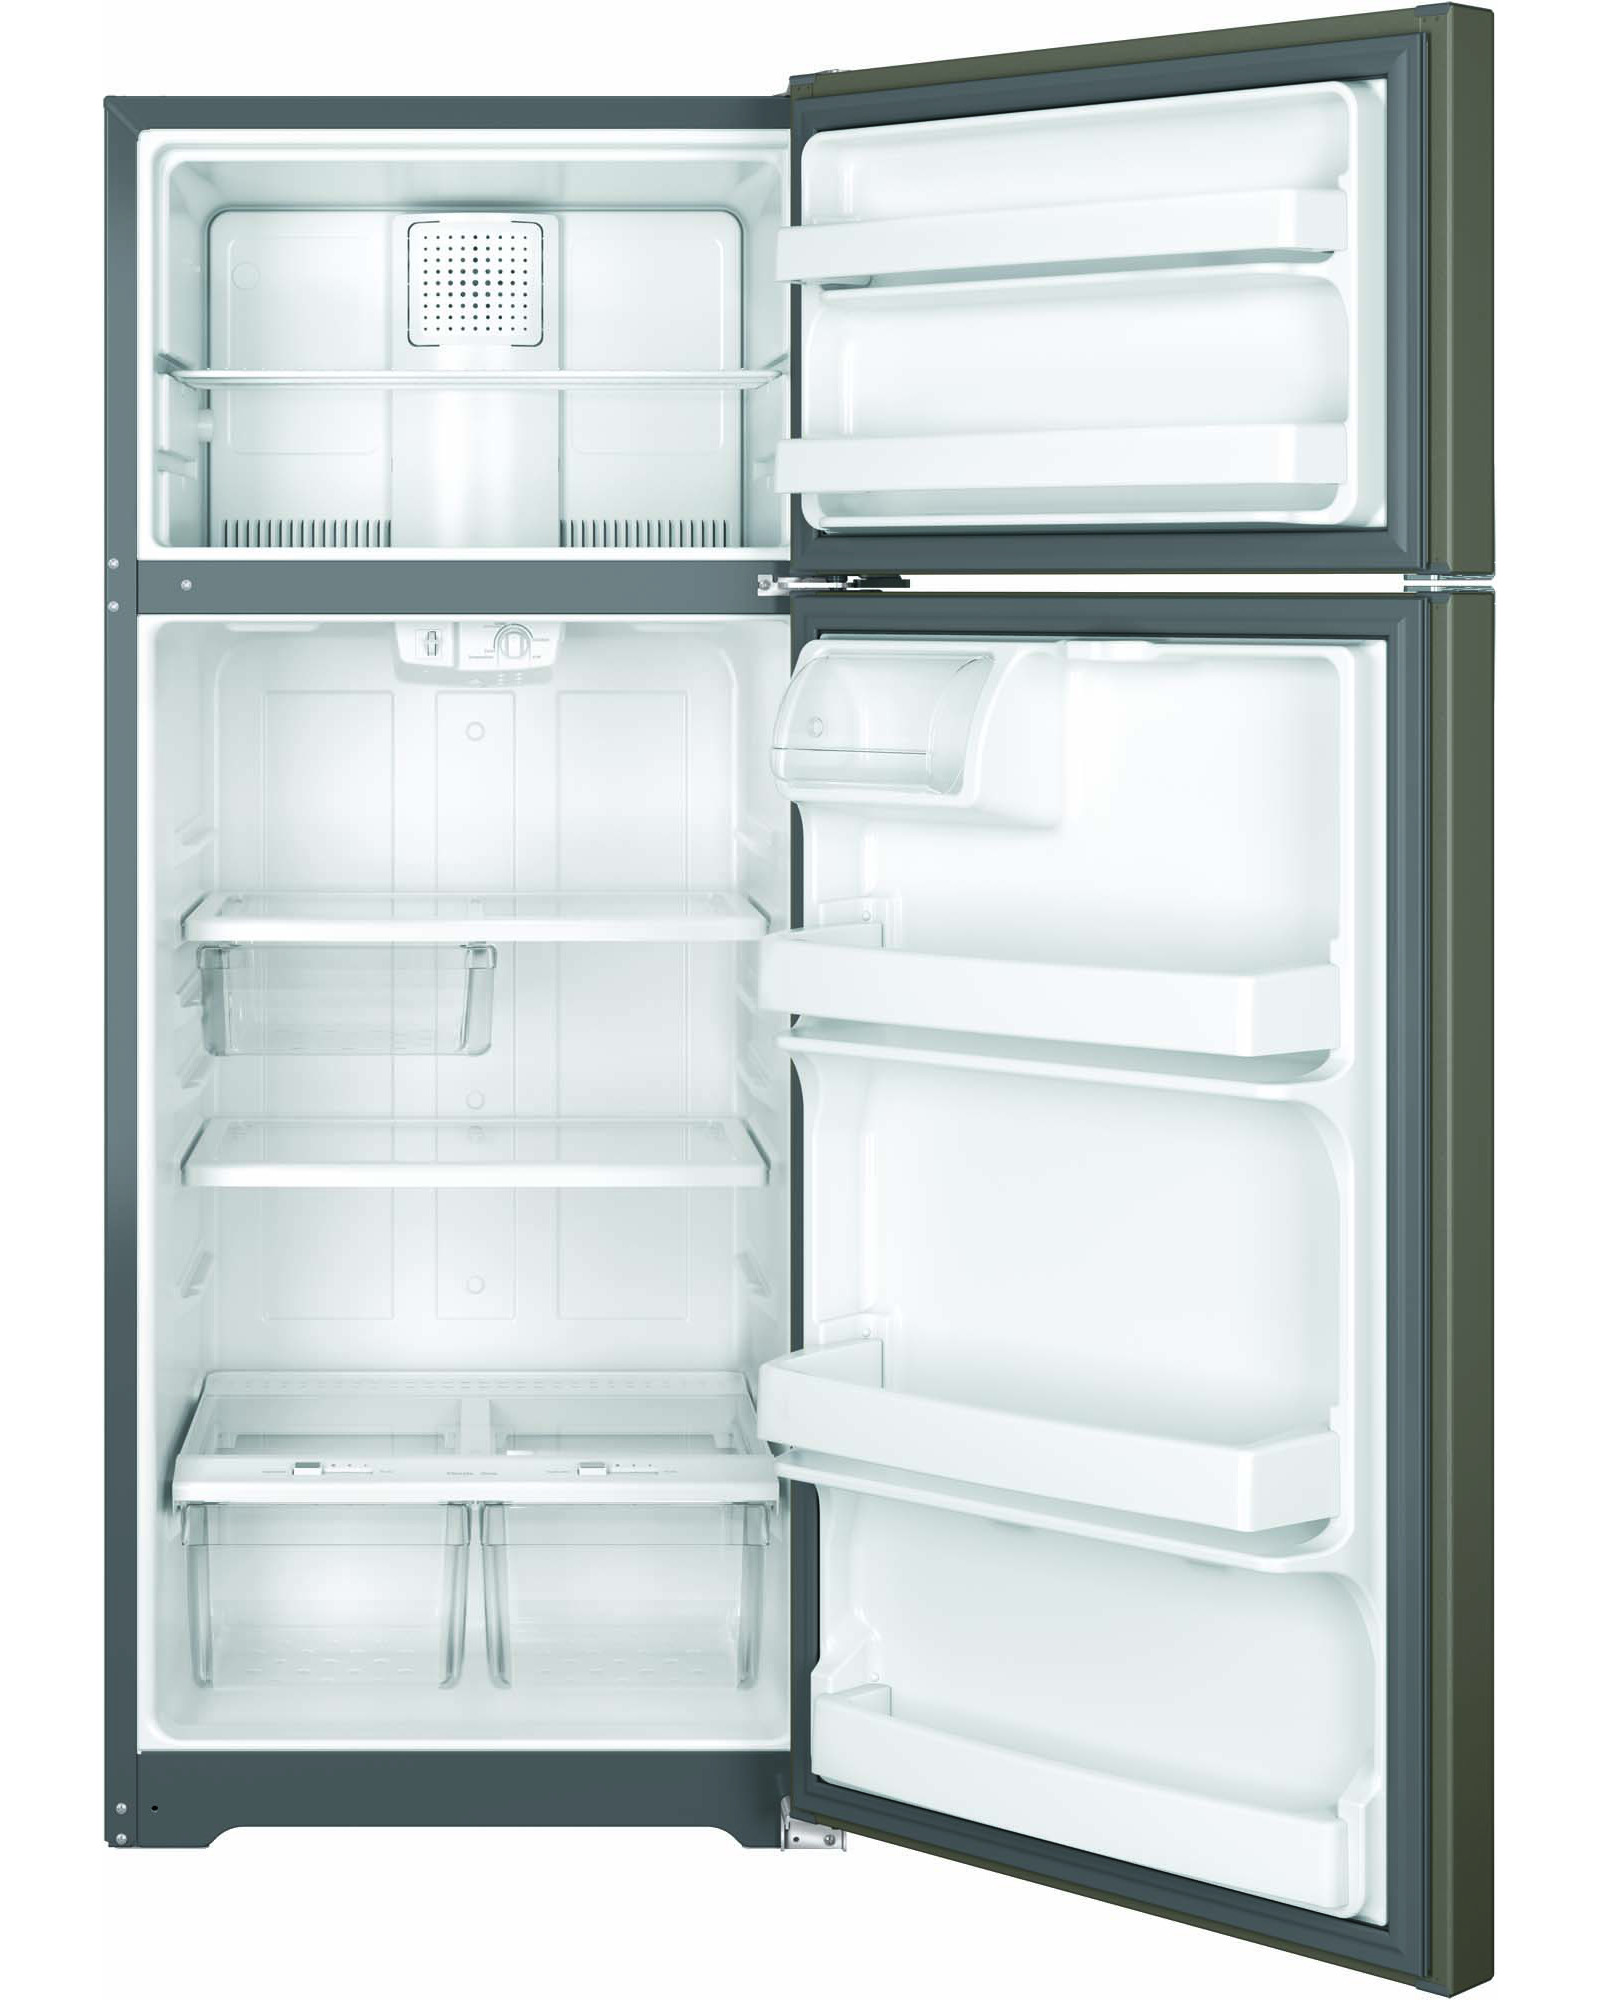 GE Appliances GTE18GMHES 17.5 cu. ft. Top-Freezer Refrigerator - Slate